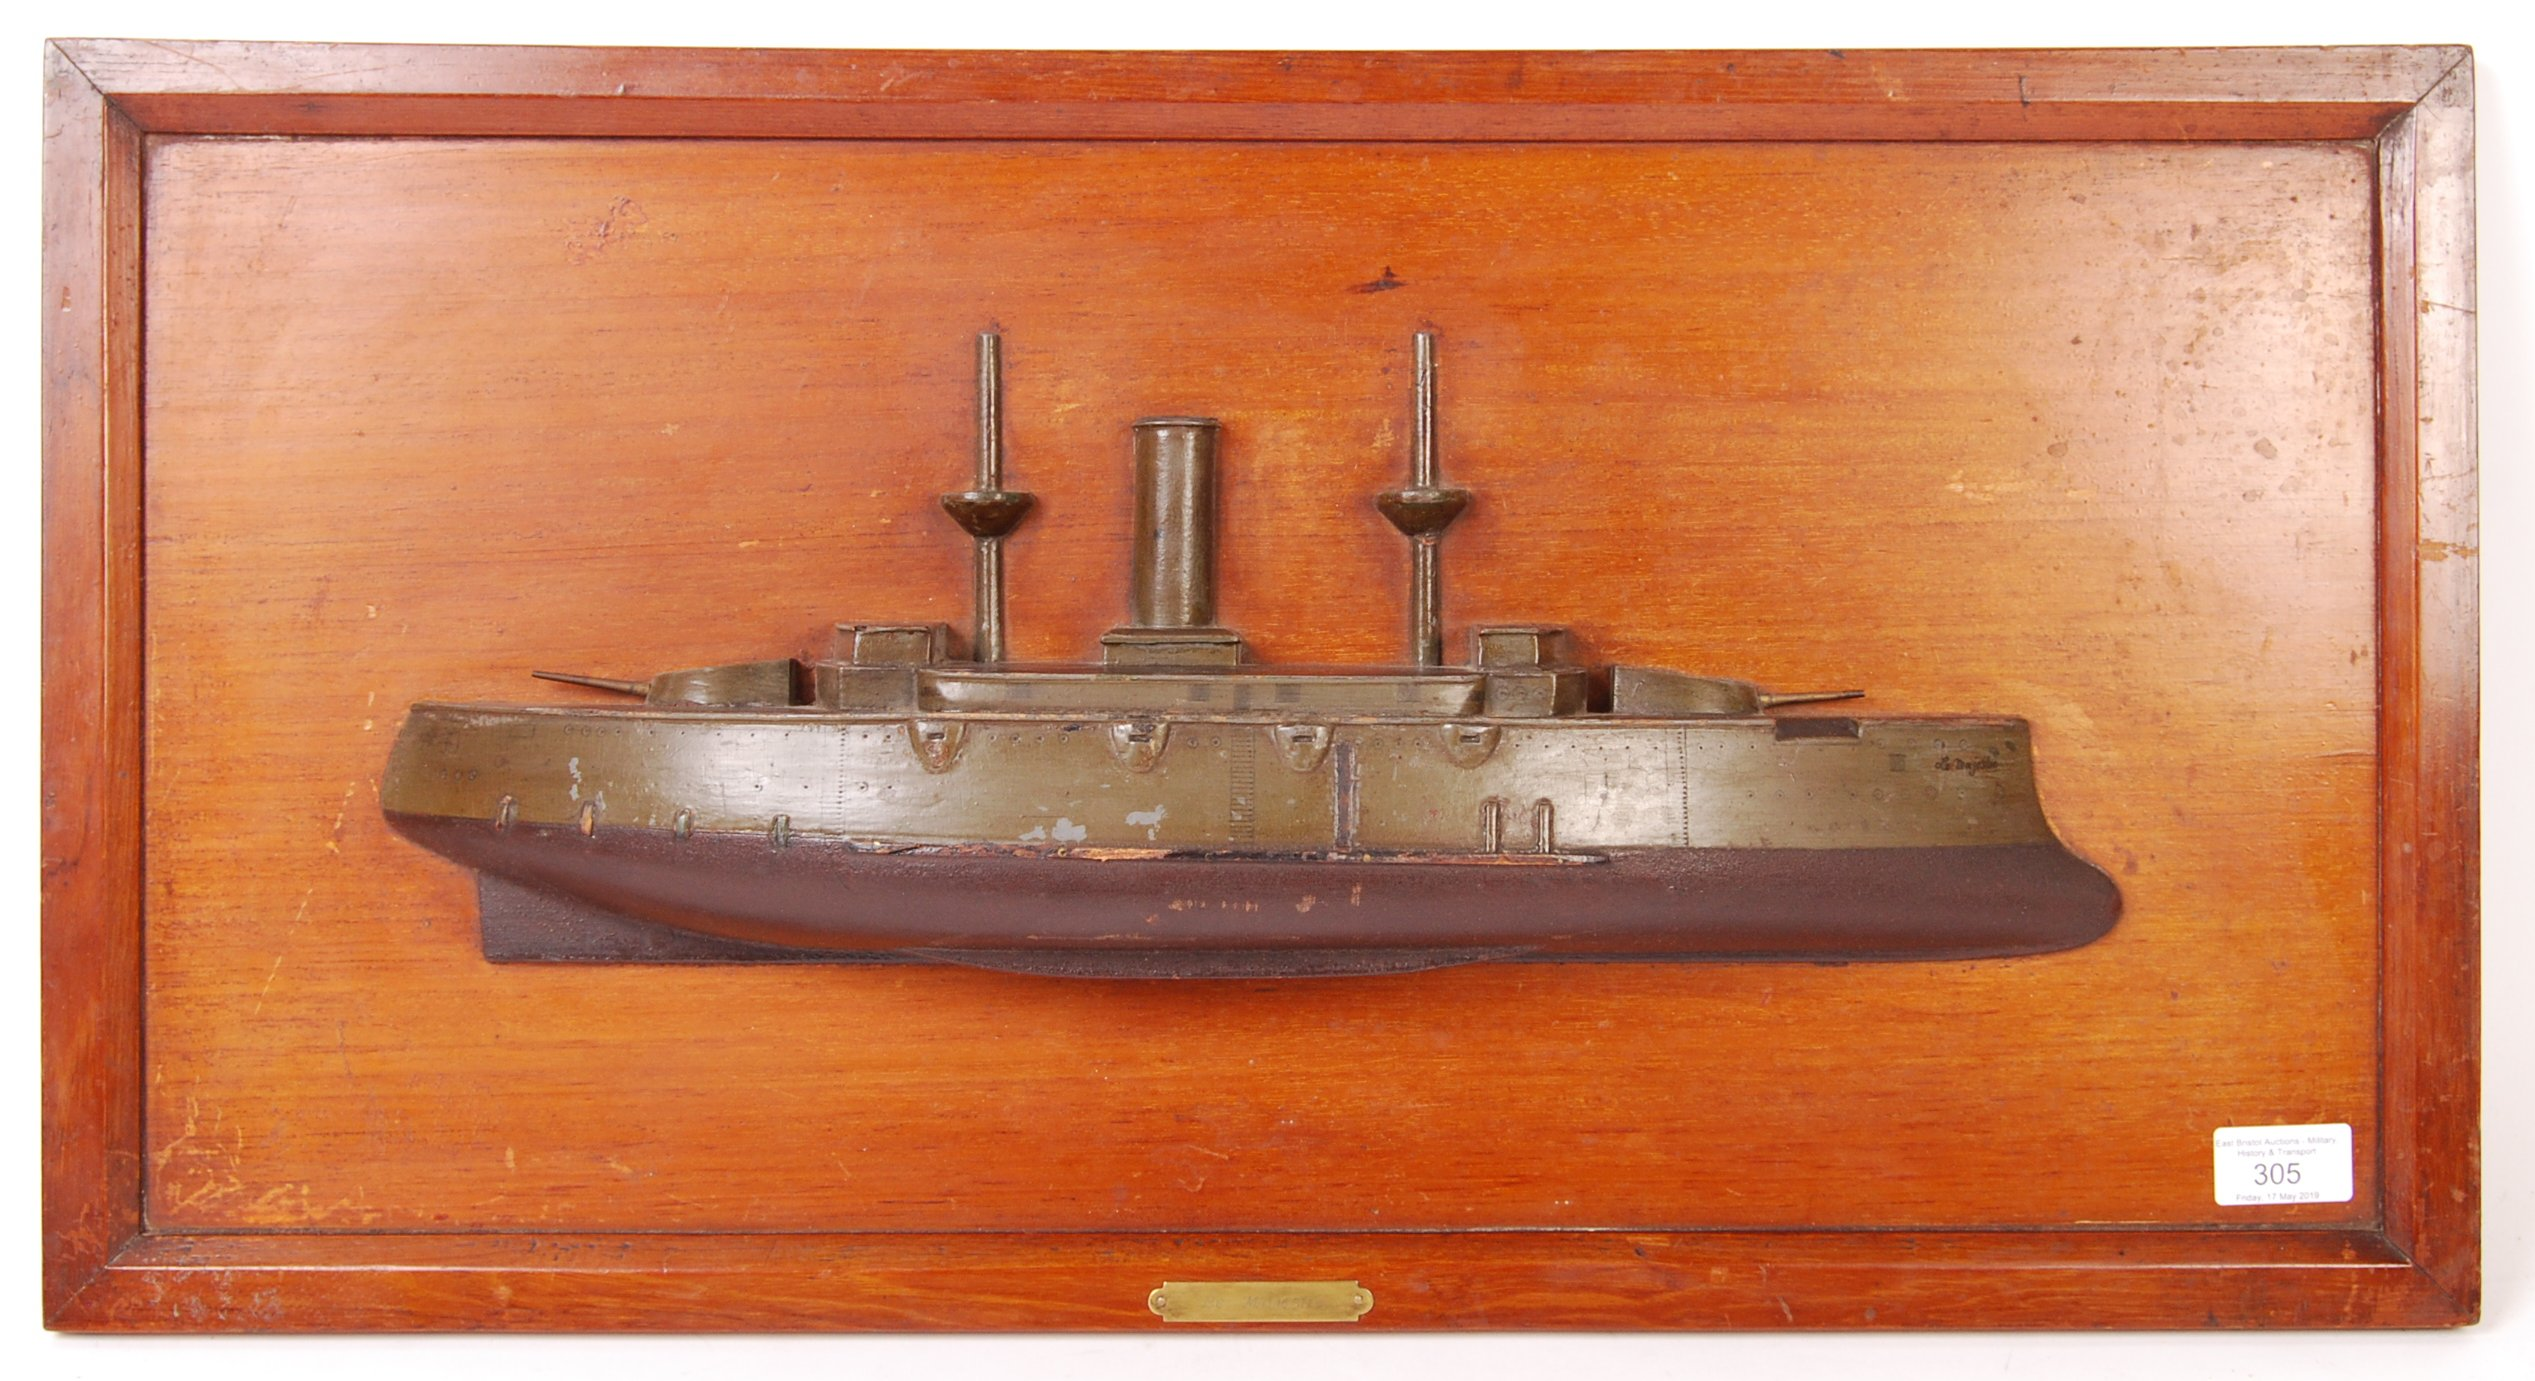 RARE WWI FRENCH HALF BLOCK MODEL OF AN IRONCLAD BATTERY